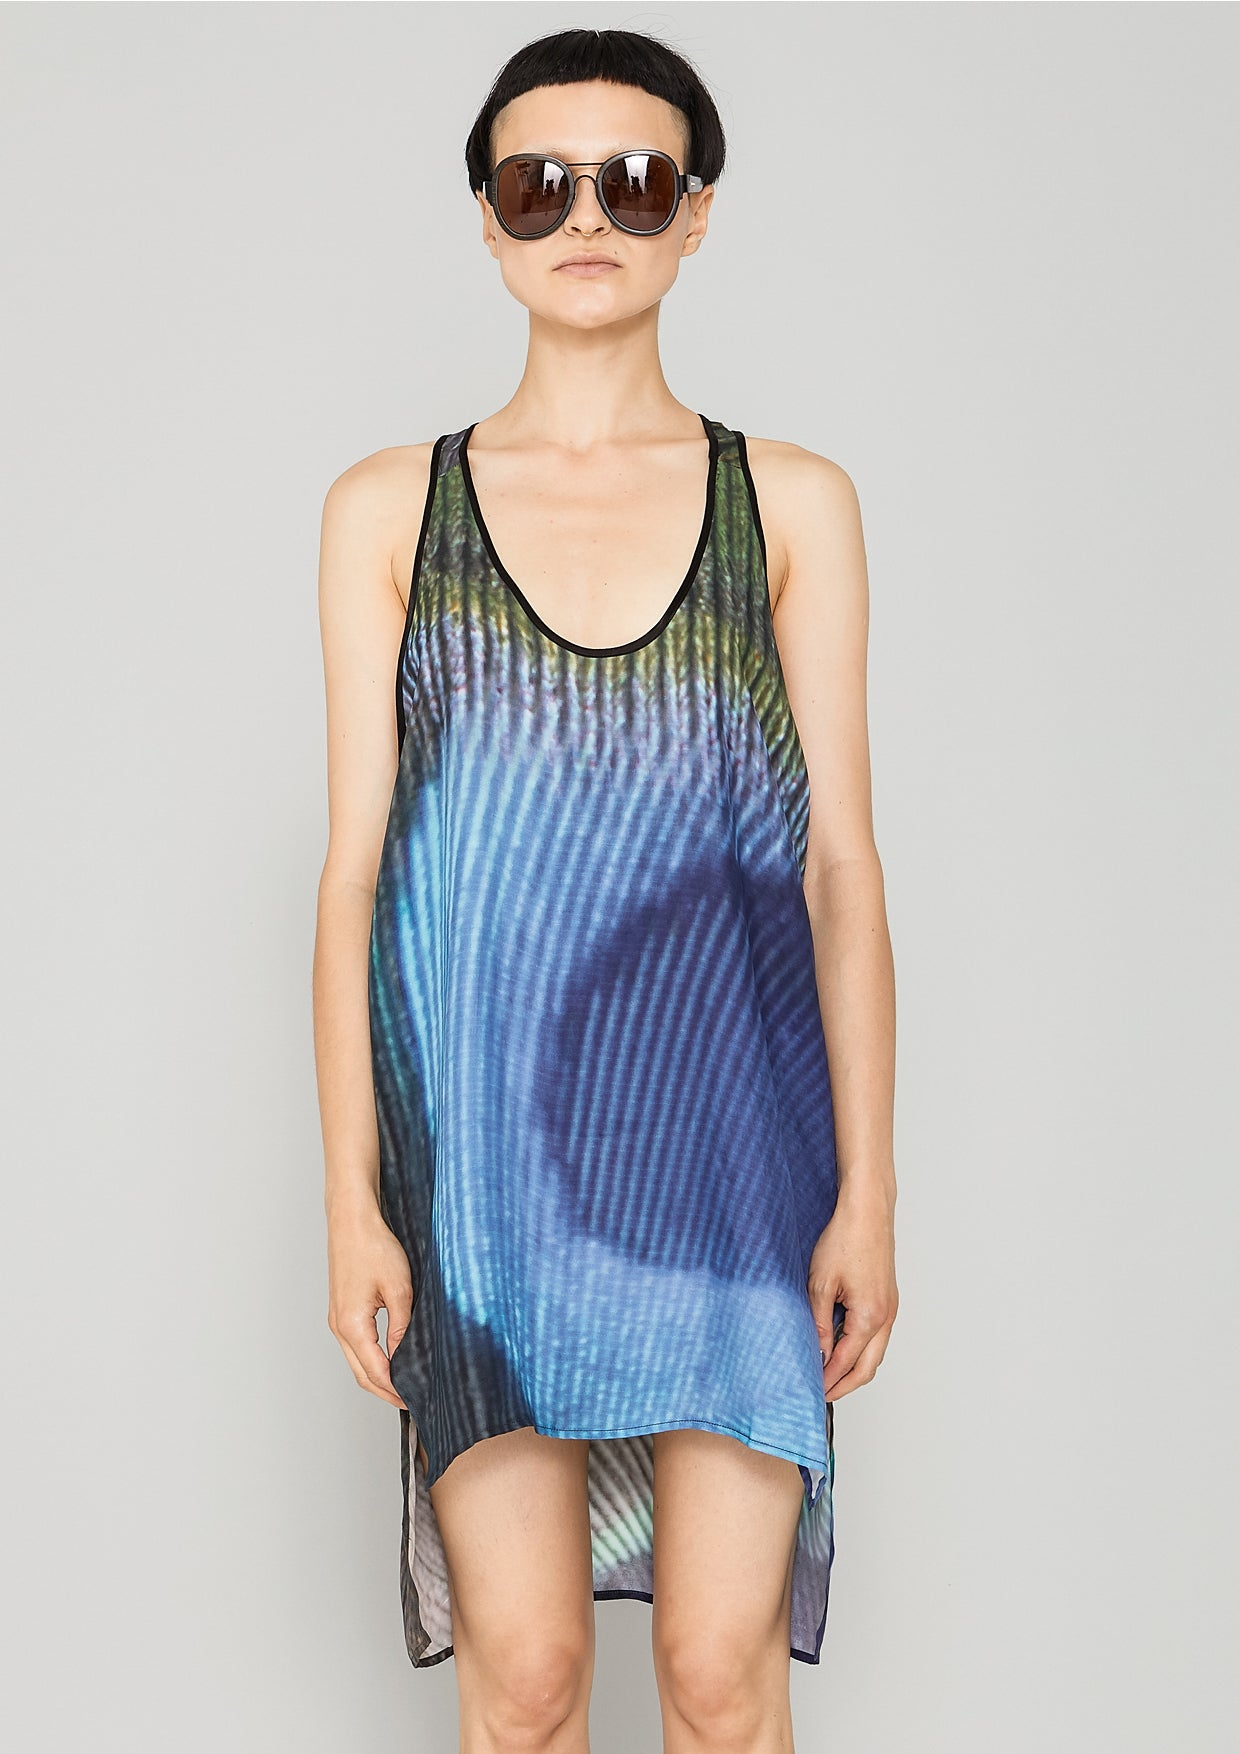 07eac74391d1ad TANK TOP OVERSIZED - SILKY CUPRO printed peacock